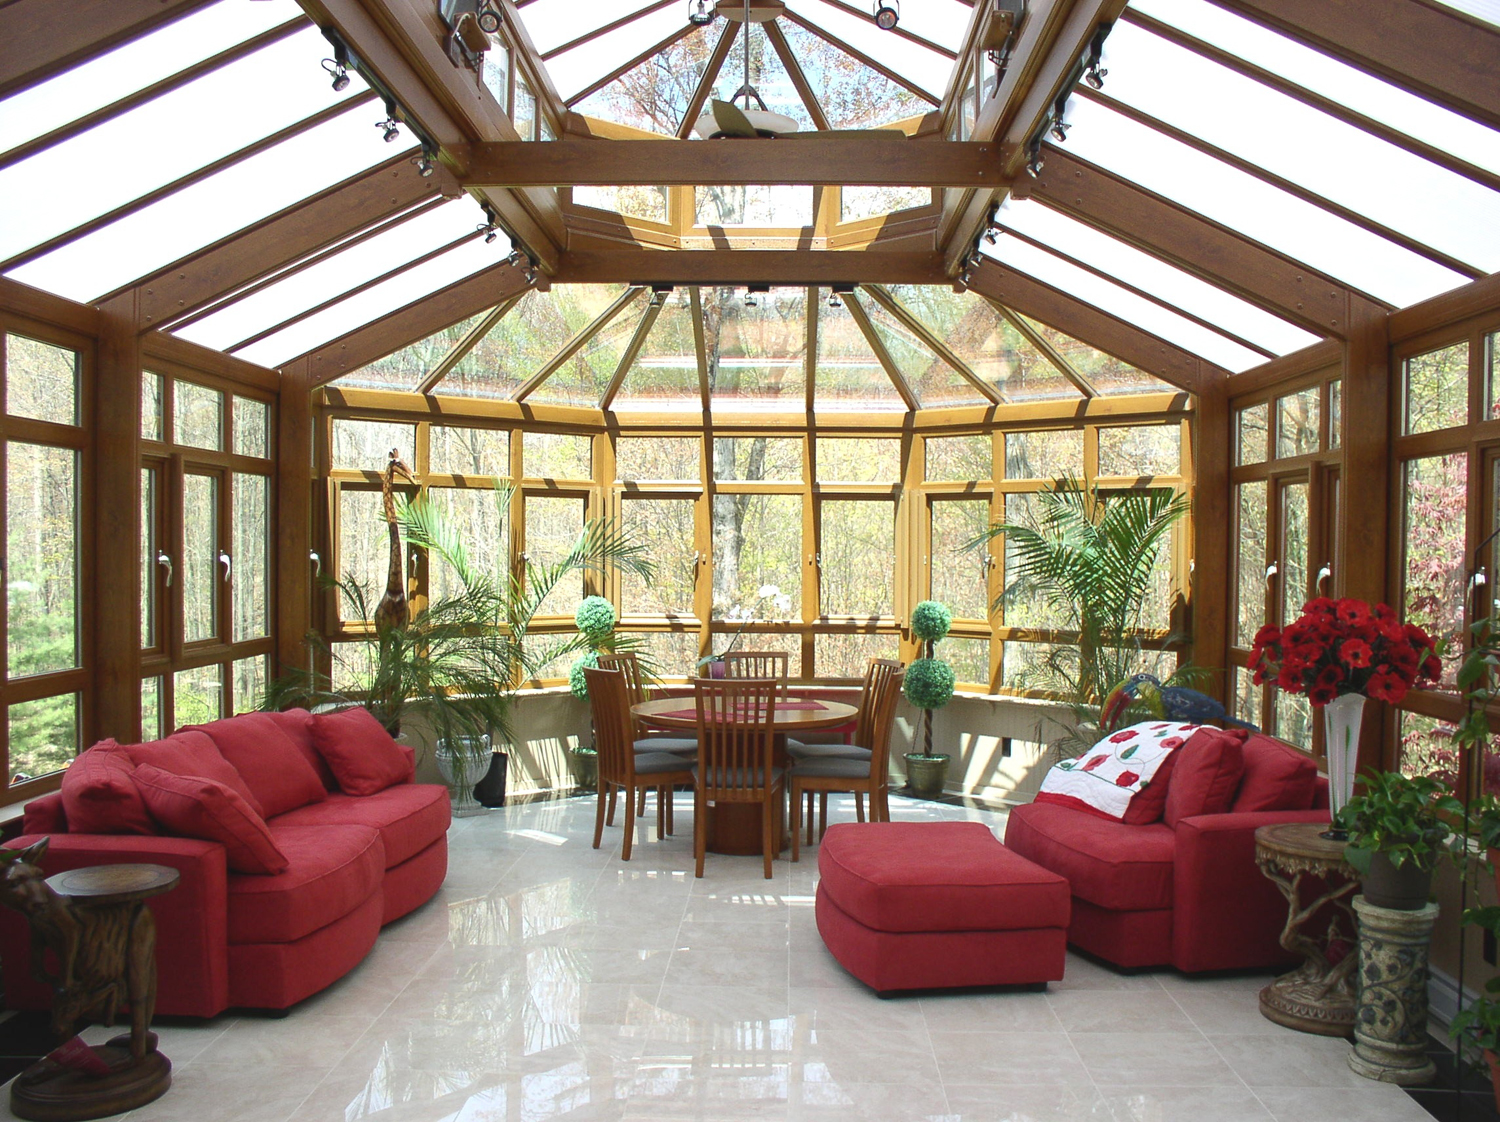 Sunroom Plans Planning Your New Sunroom Dream Room